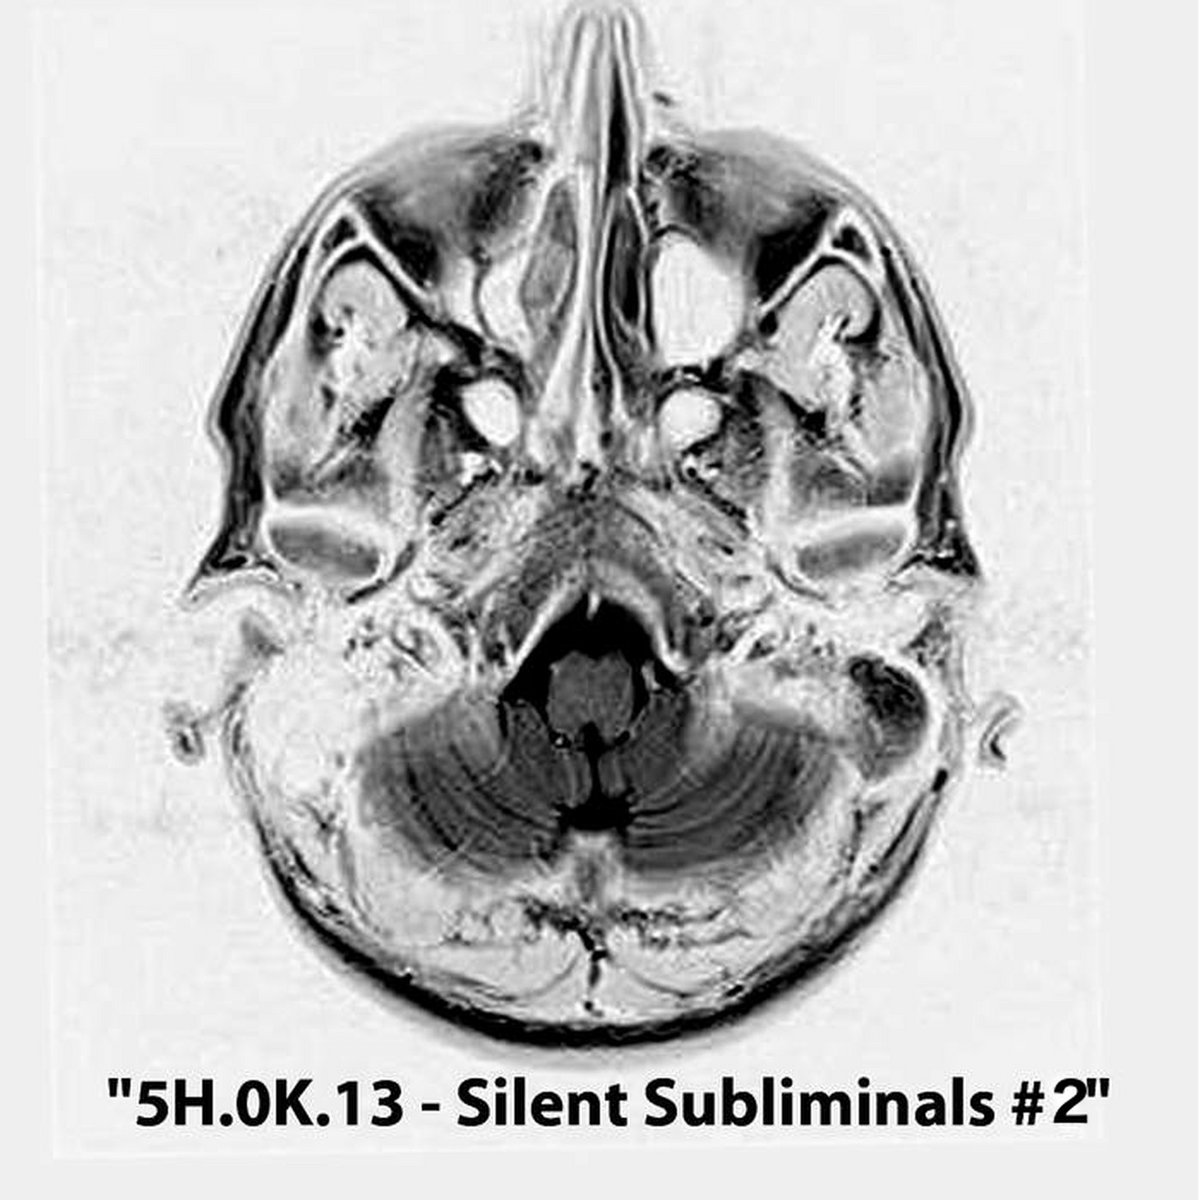 5H.0K.13 - Silent Subliminals #1 & #2 (2015 - 2016)